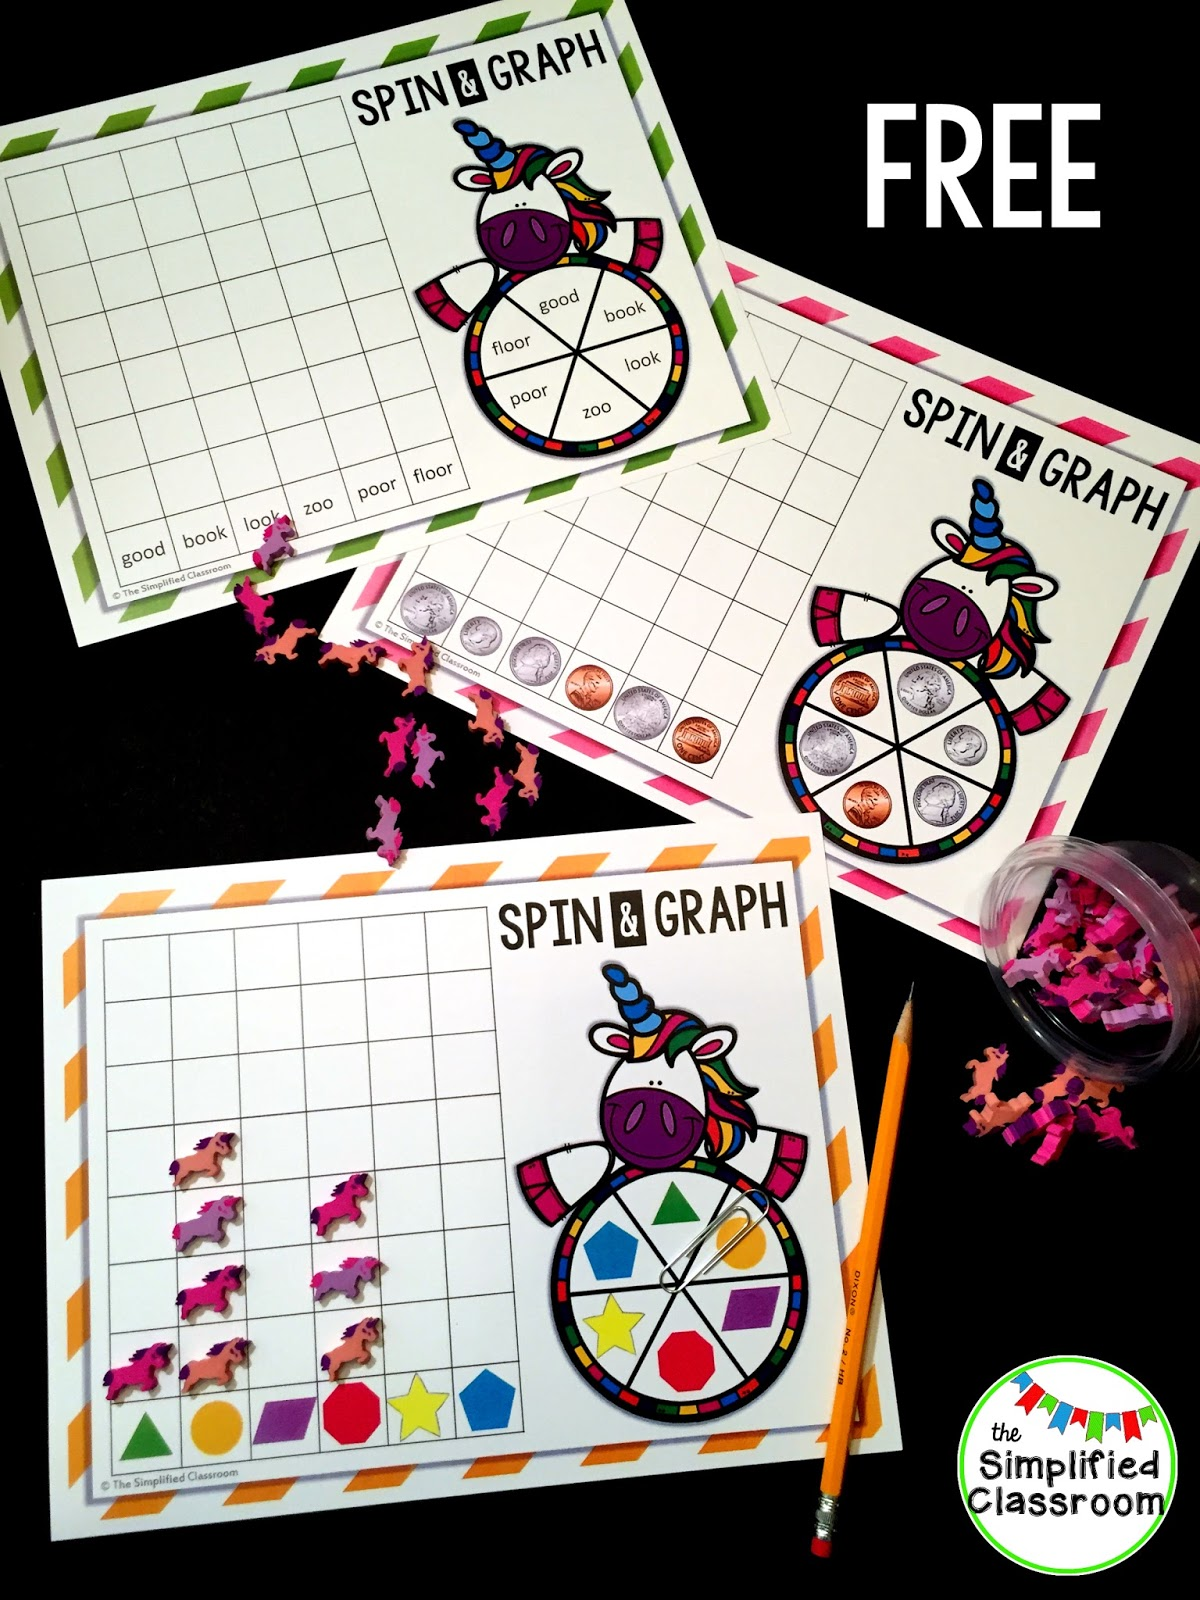 The Simplified Classroom Unicorn Spin And Graph Freebie